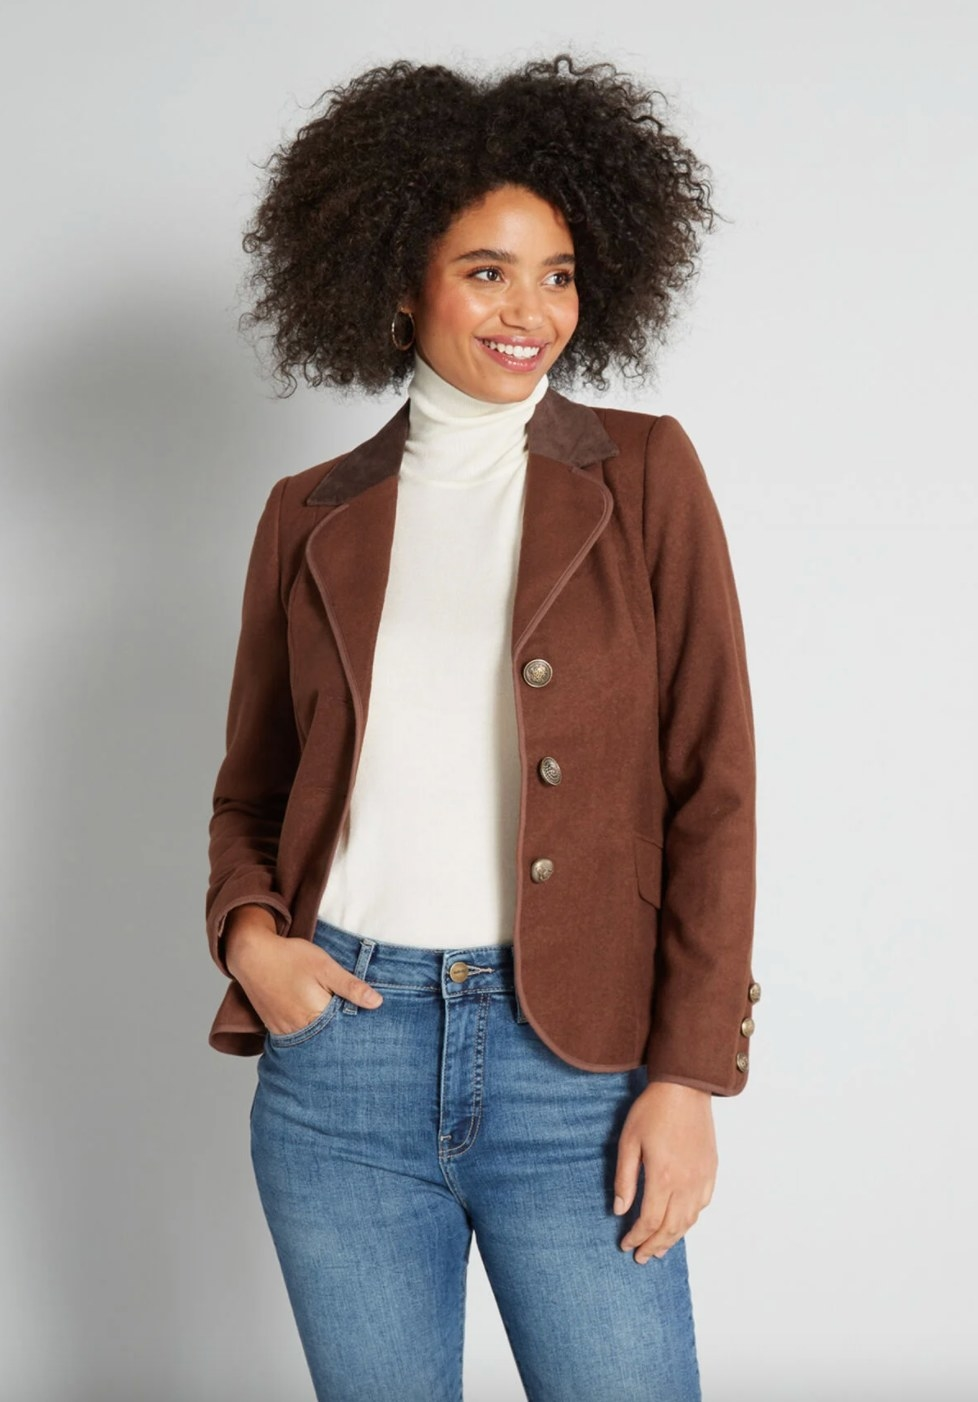 The blazer in brown on a model wearing a white turtleneck